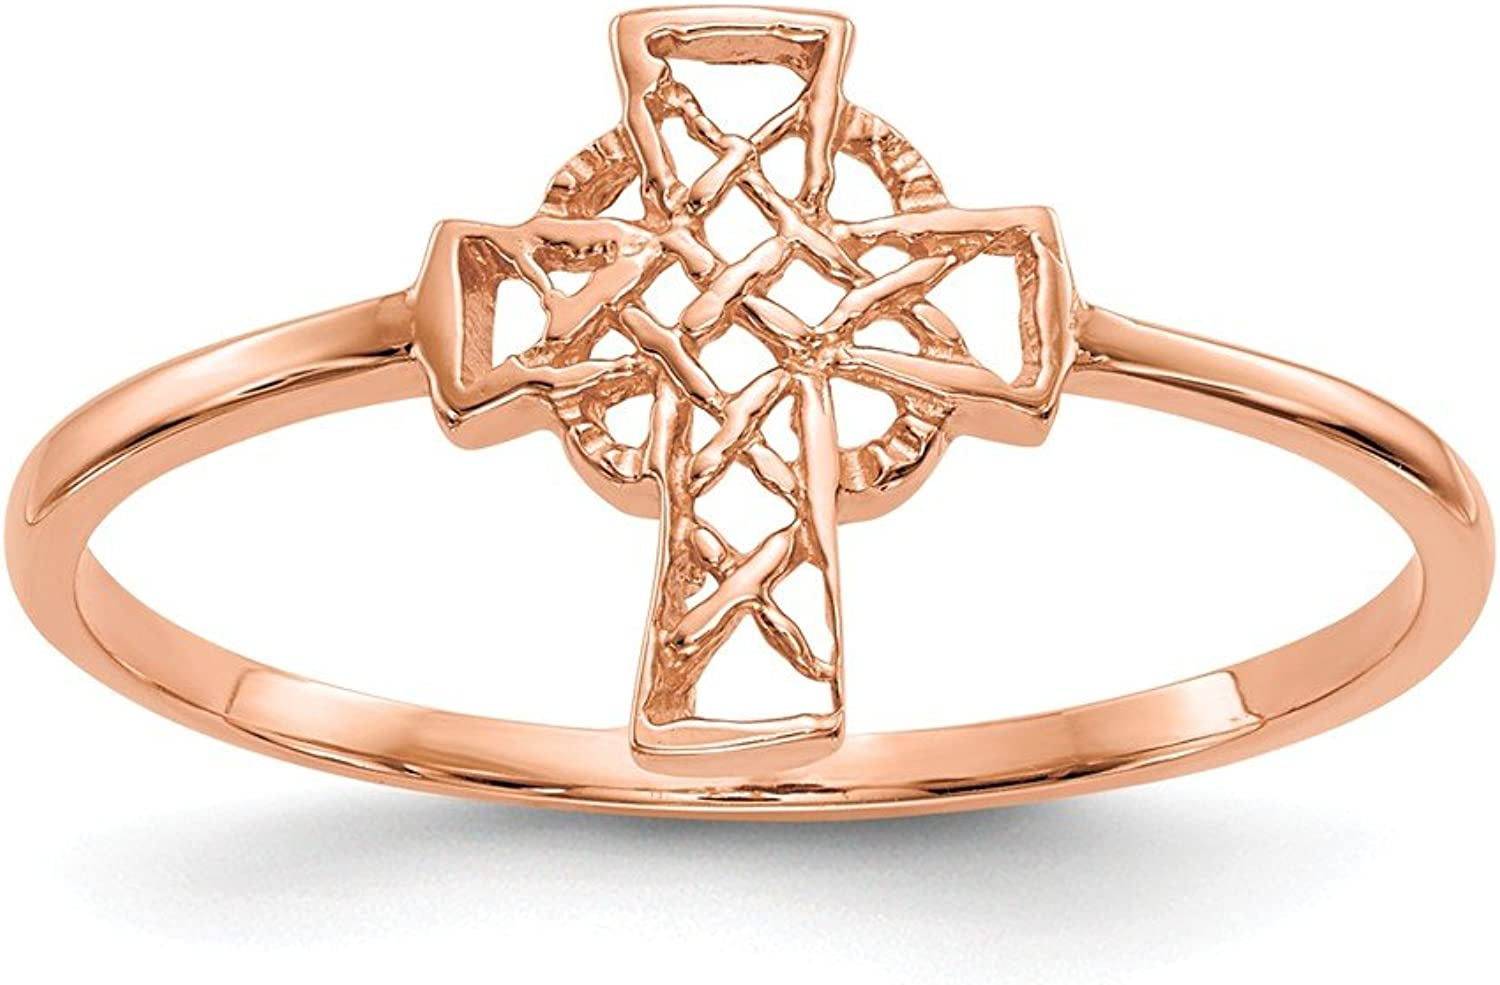 Beautiful pink gold 14K 14k pink gold Polished Celtic Cross Ring